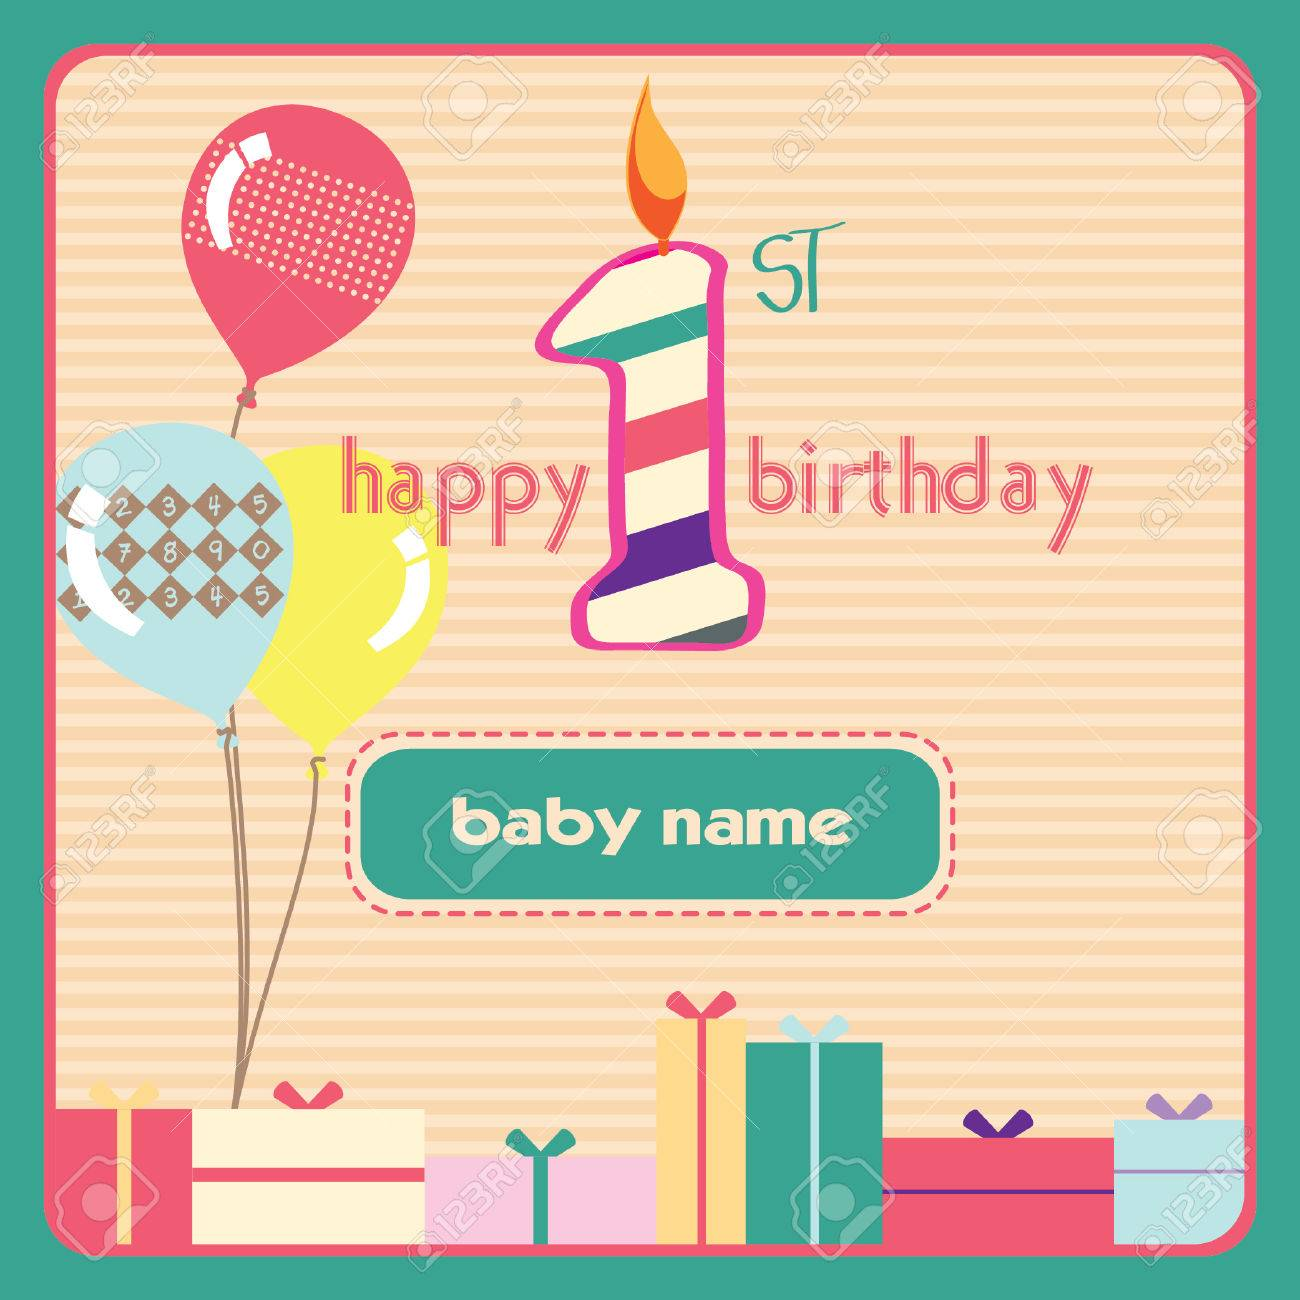 1st Birthday Greeting Card Royalty Free Cliparts Vectors And – 1st Birthday Greetings